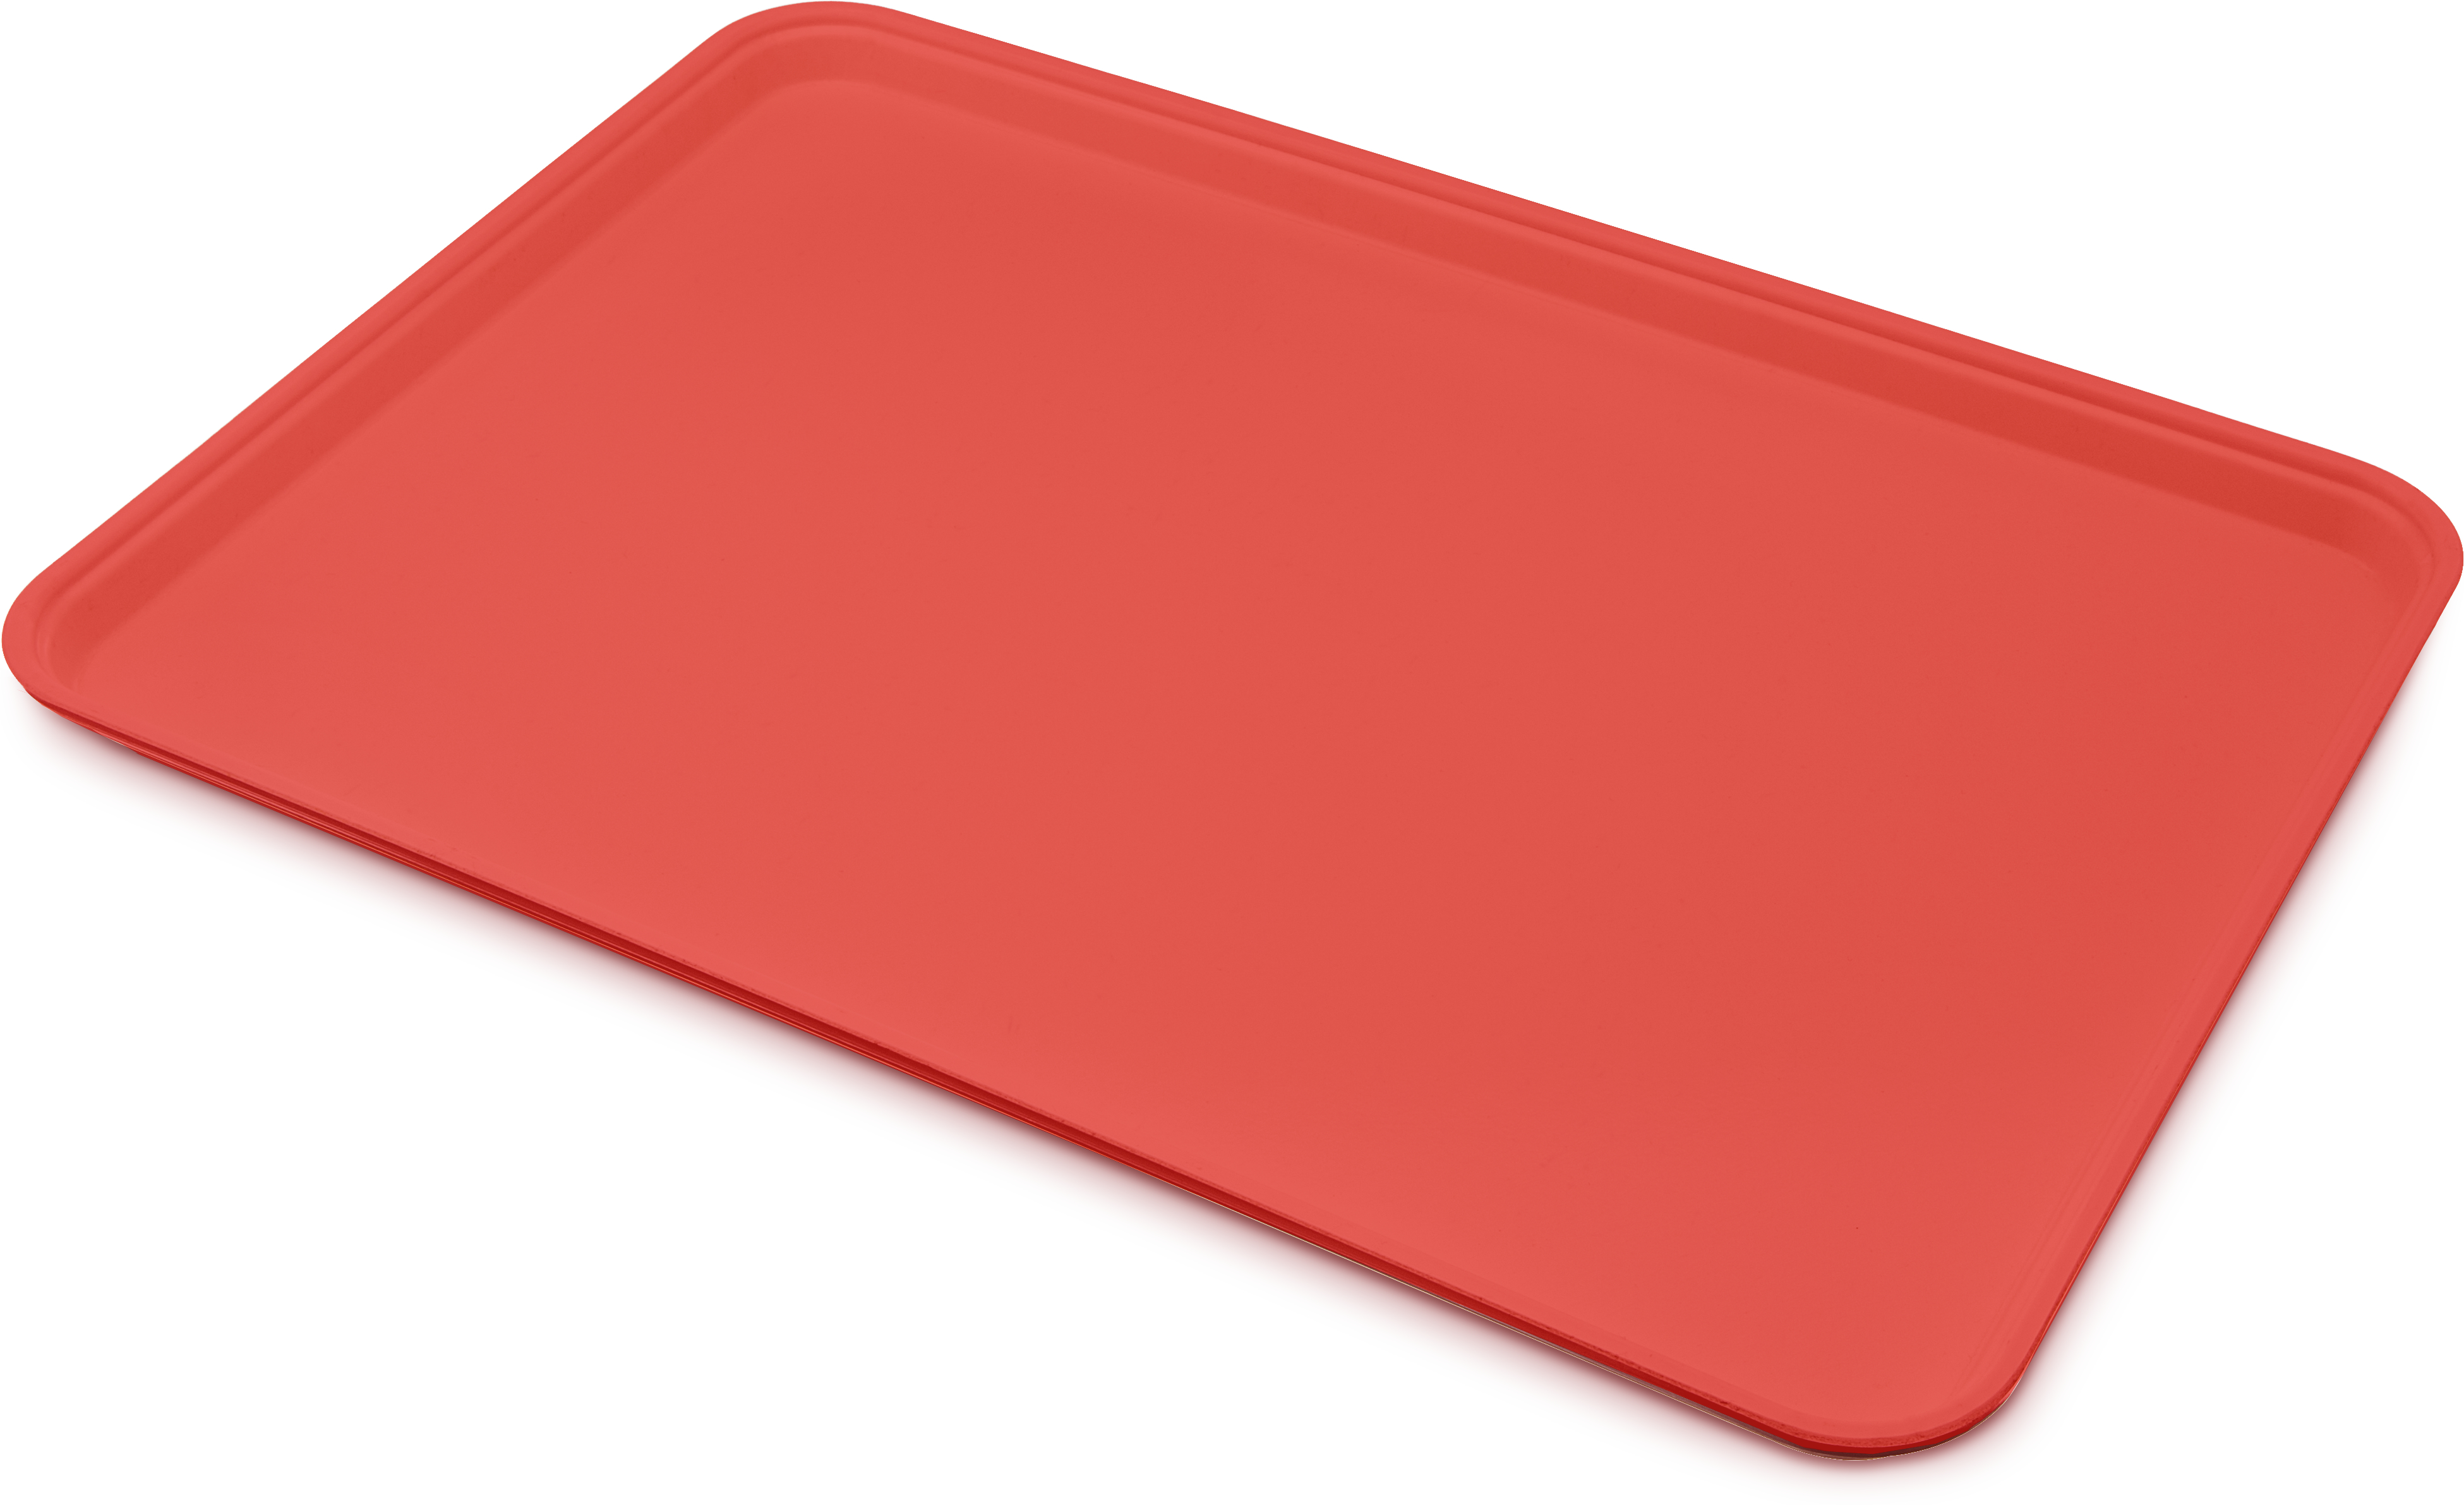 Glasteel Tray Display/Bakery 17.9 x 25.6 - Red